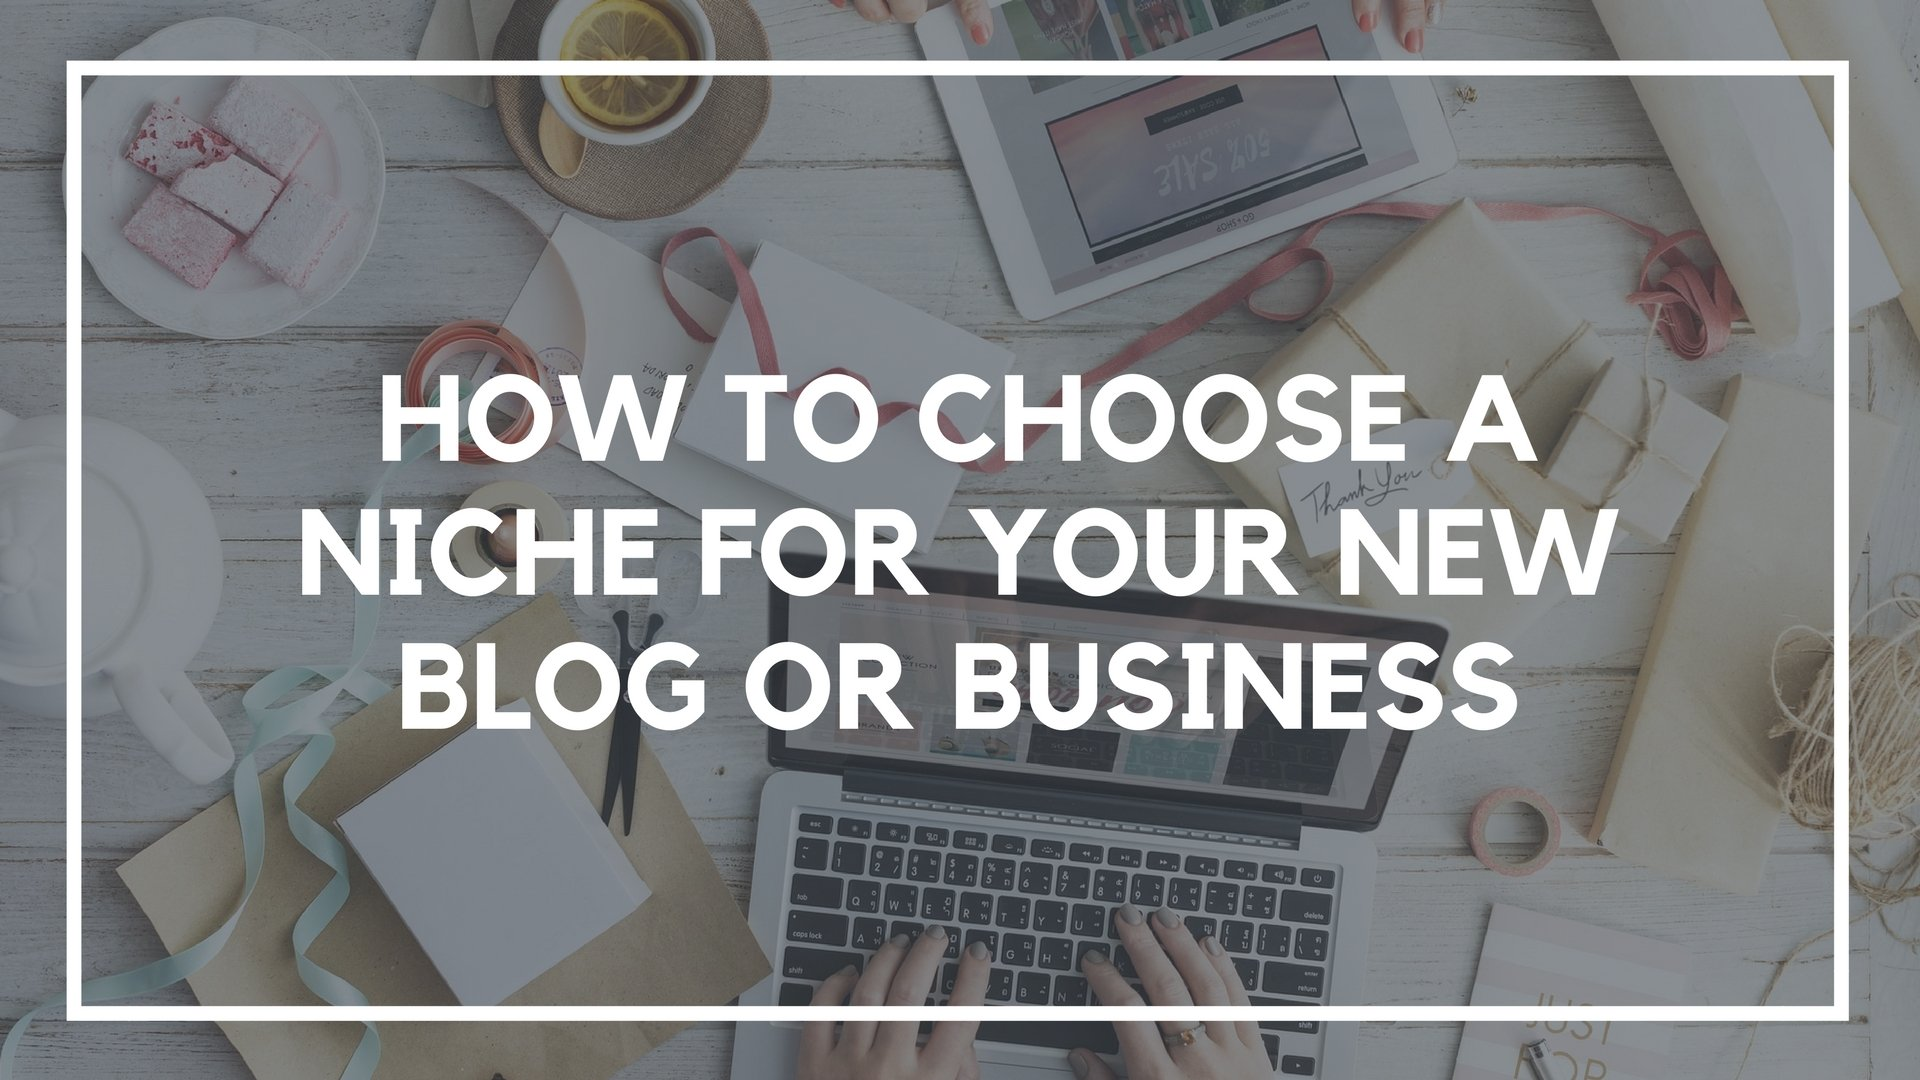 How to Choose a Niche For Your New Blog or Business